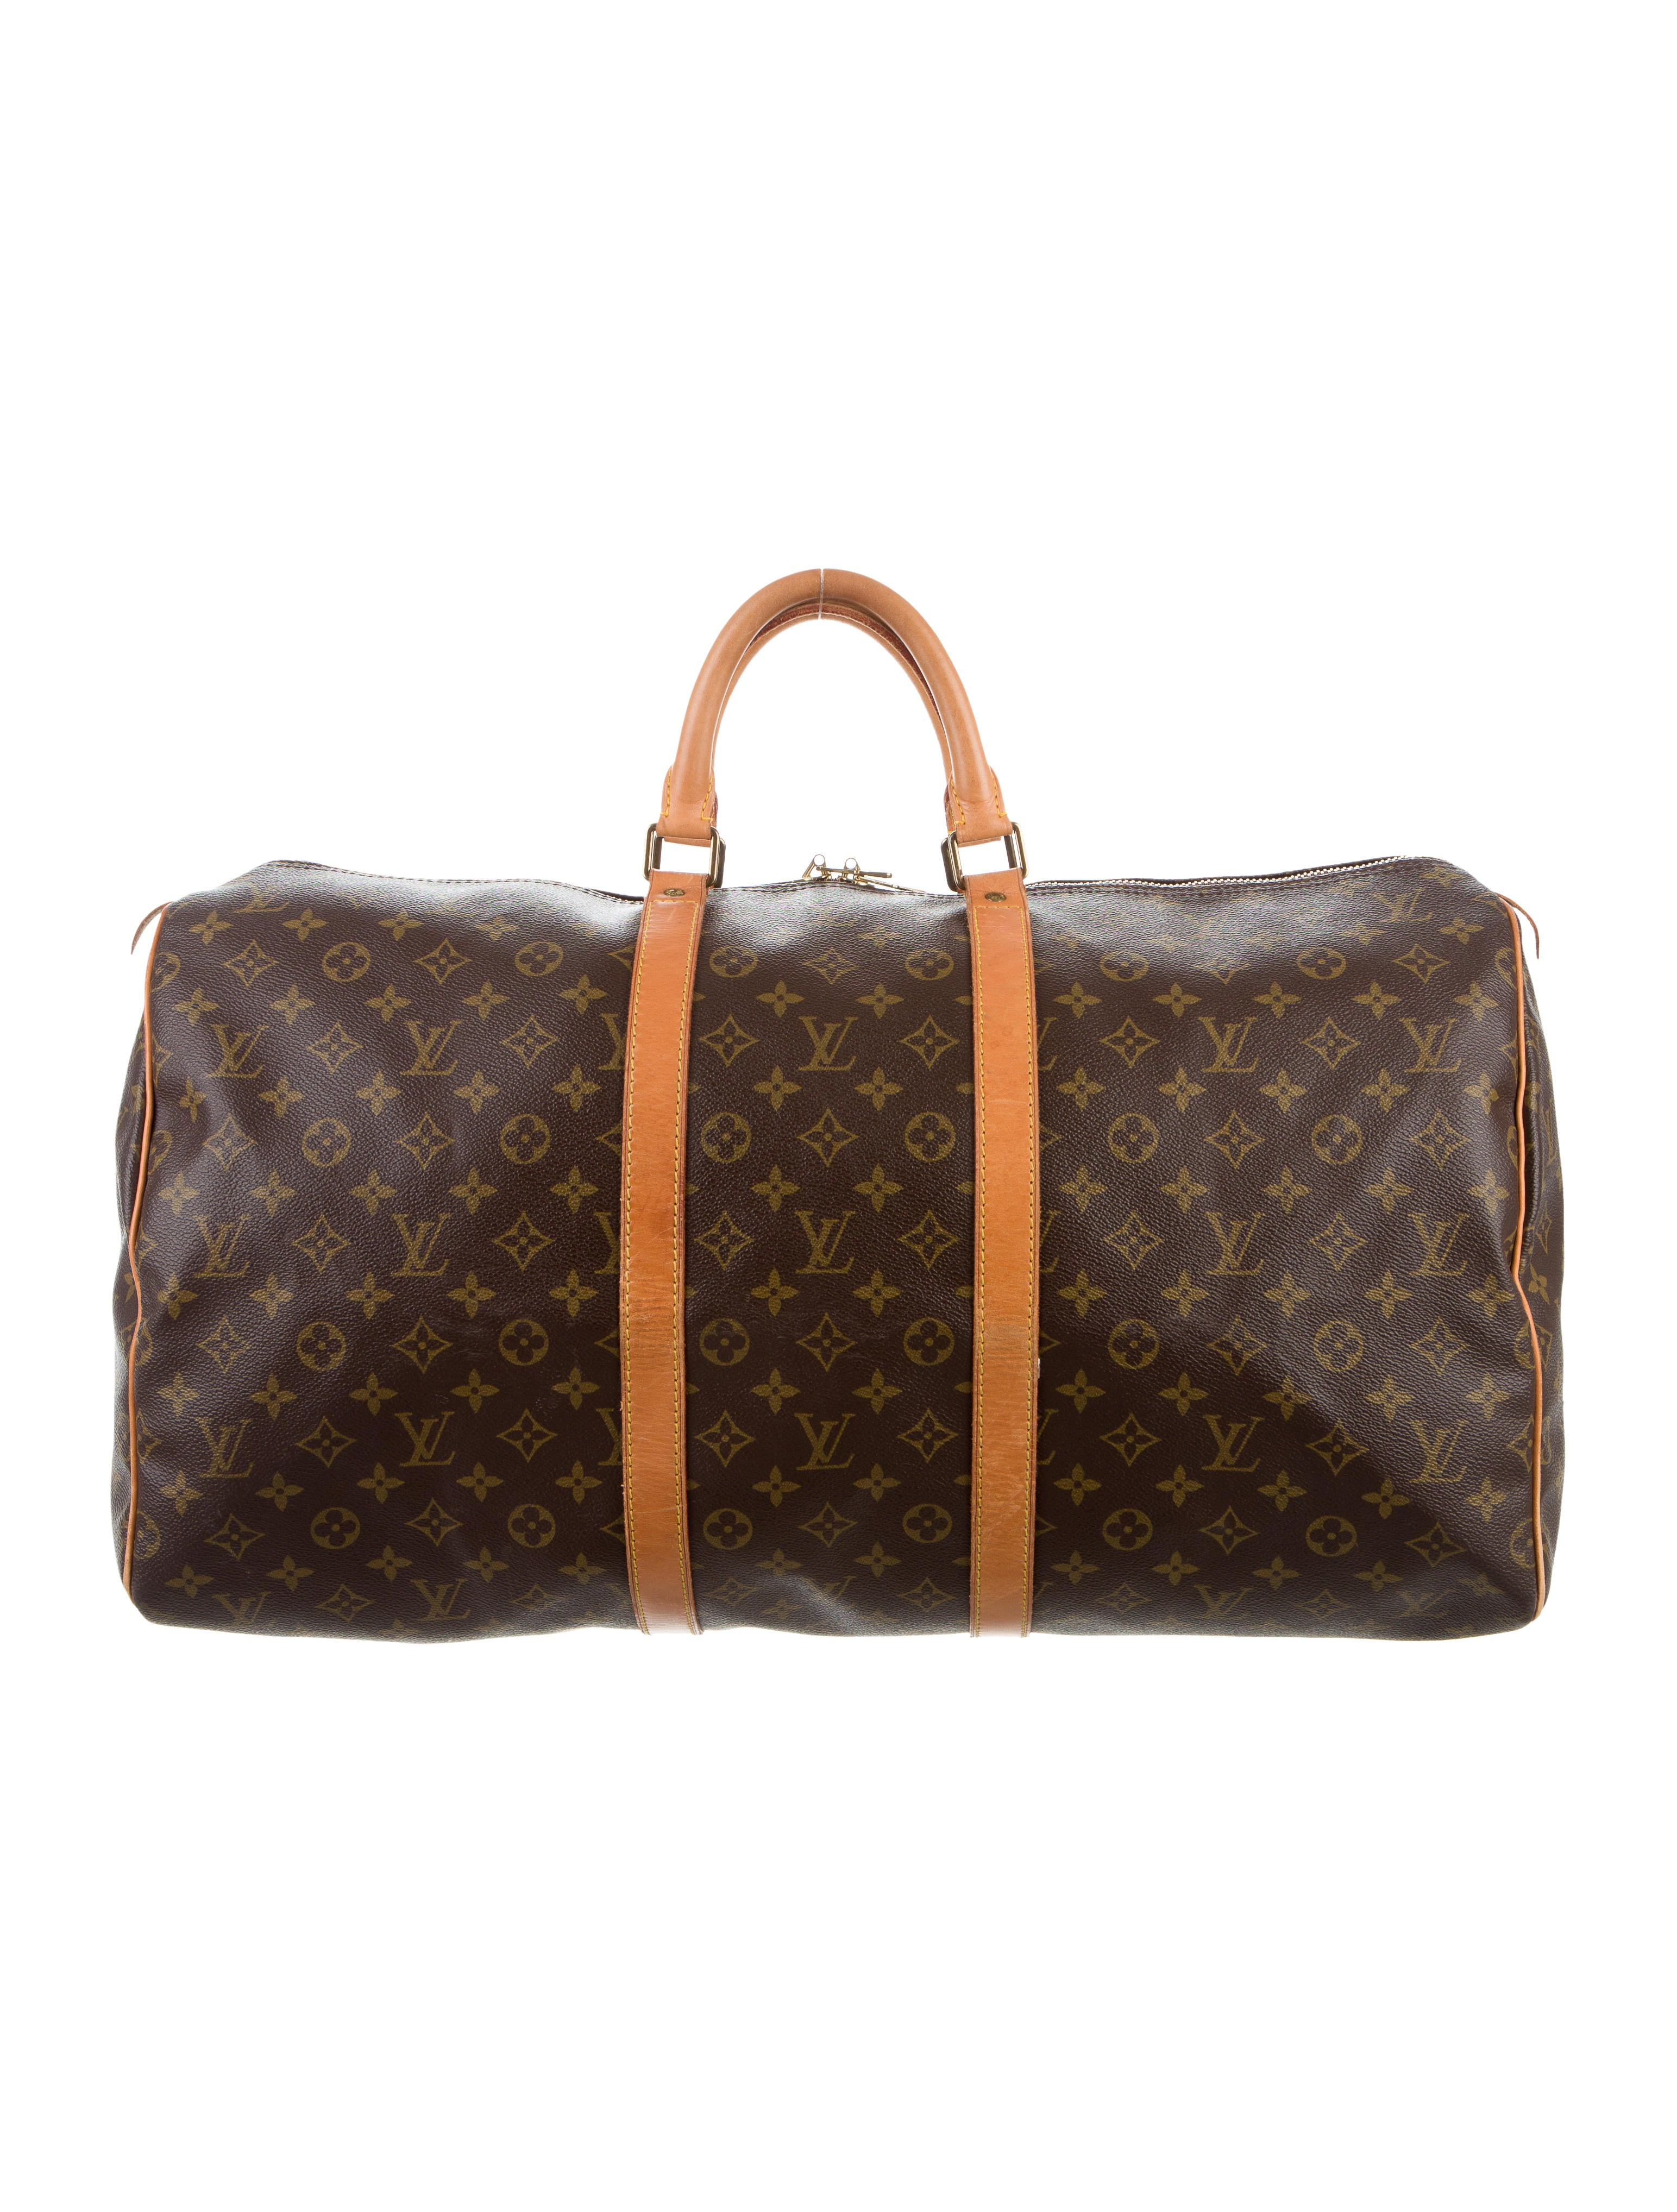 louis vuitton monogram keepall 55 handbags lou124327. Black Bedroom Furniture Sets. Home Design Ideas